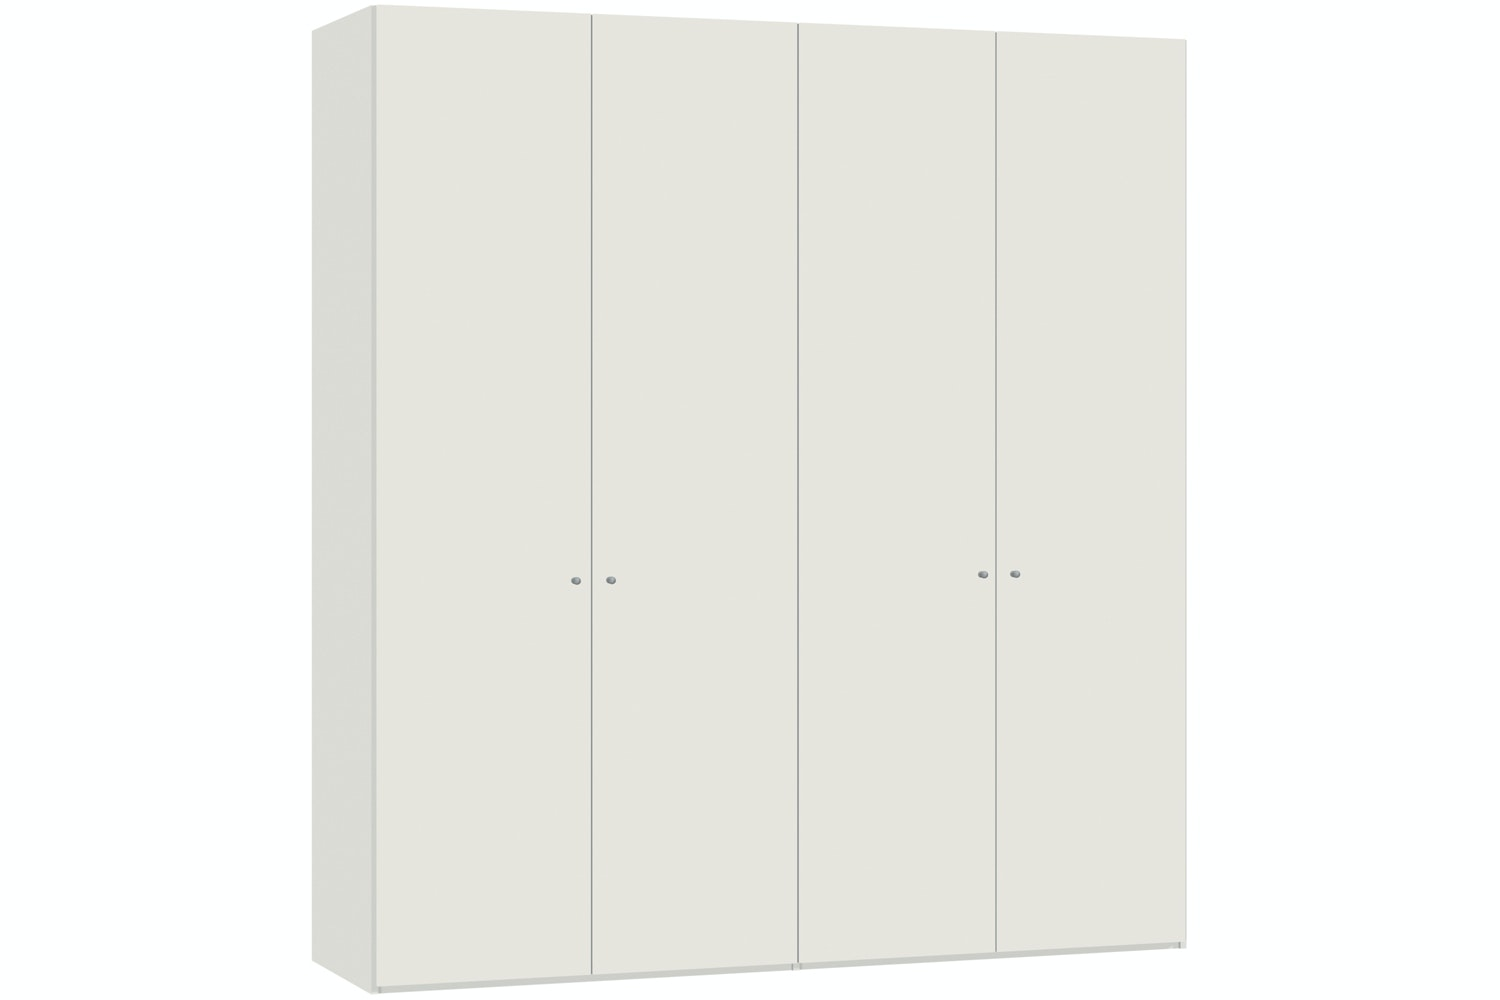 Emer Hinged 4 Door Wardrobe 203Cm | White